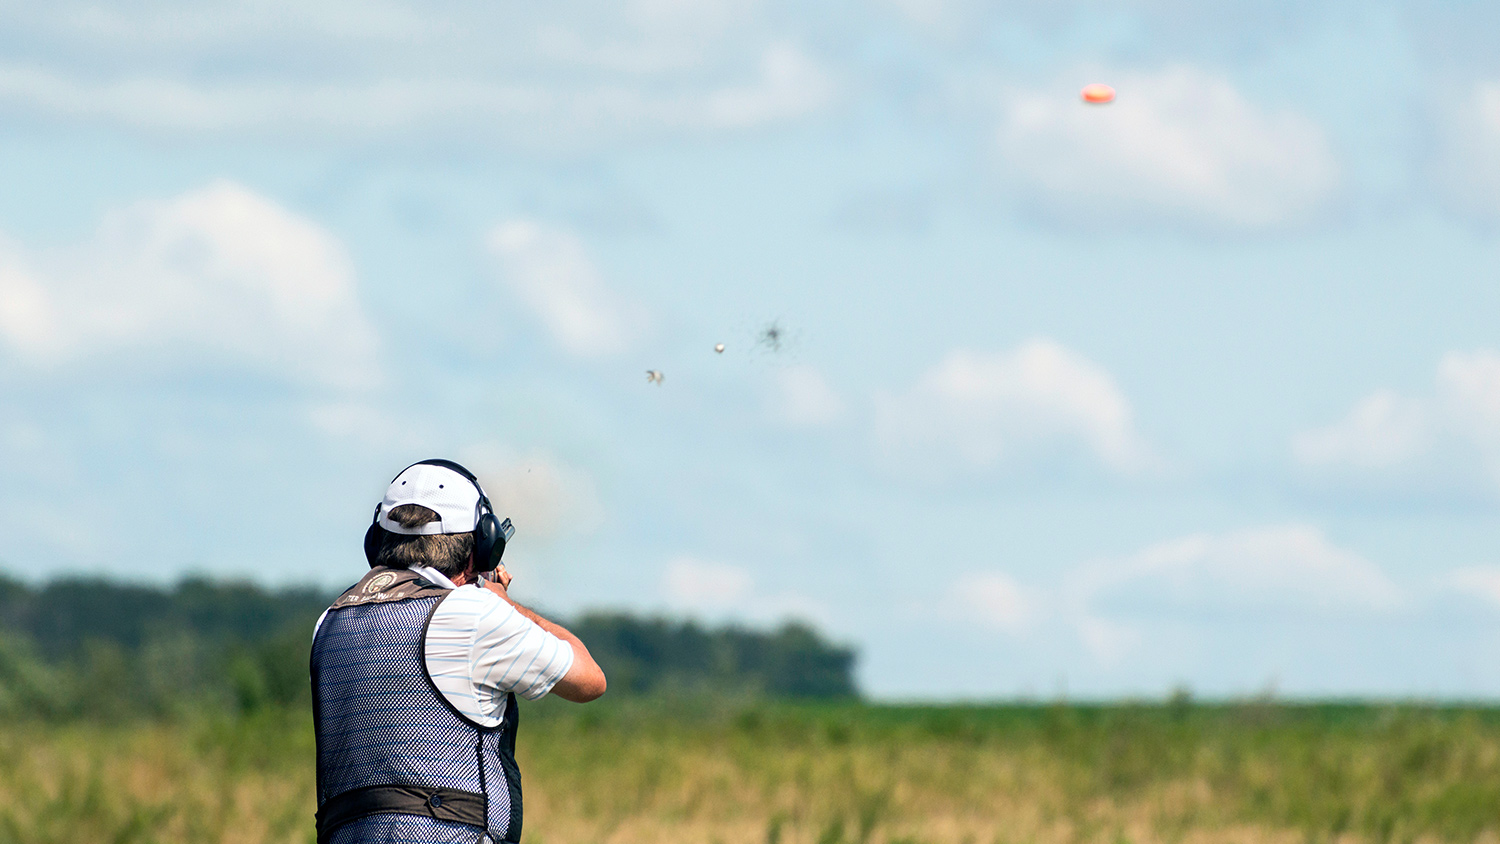 NRA Coaching Contributes to Helping ATA Build Next Generation of Trapshooting Champions